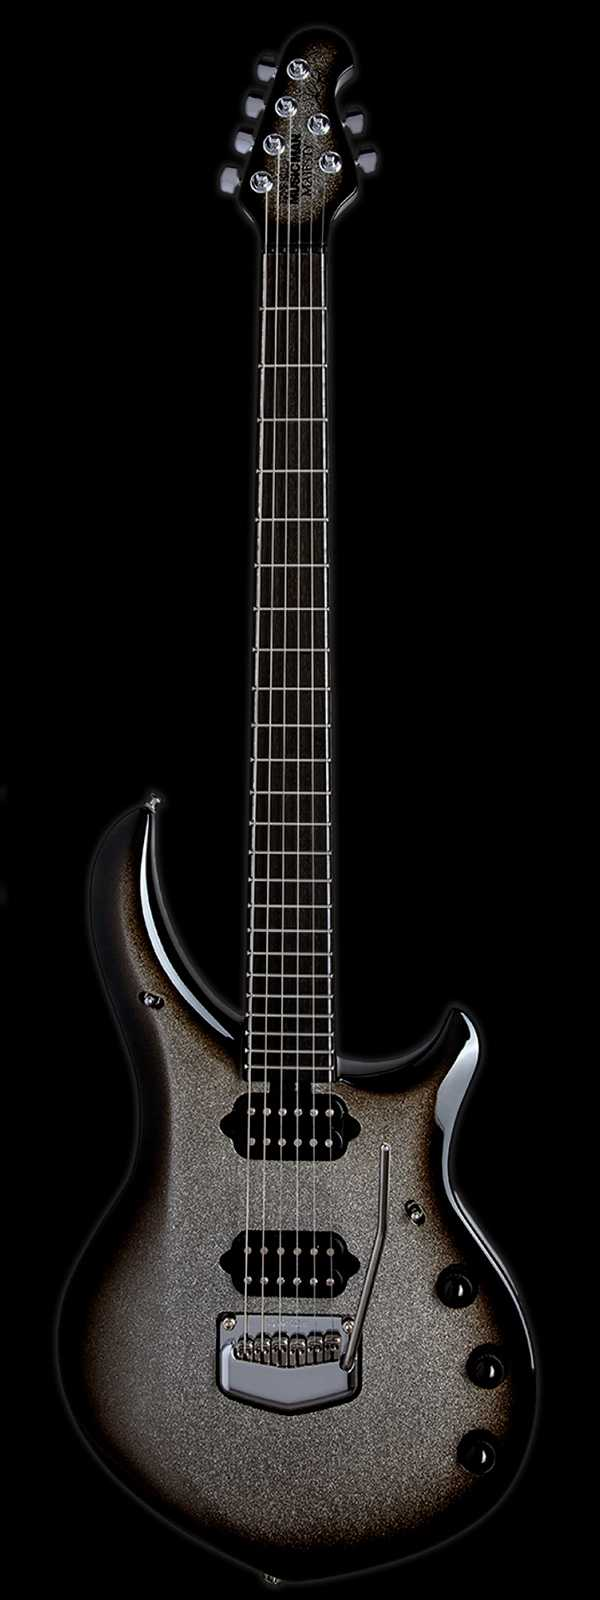 Ernie Ball Music Man BFR Limited Edition # 89 of 120 John Petrucci Signed Majesty Charred Silver Sparkle Burst